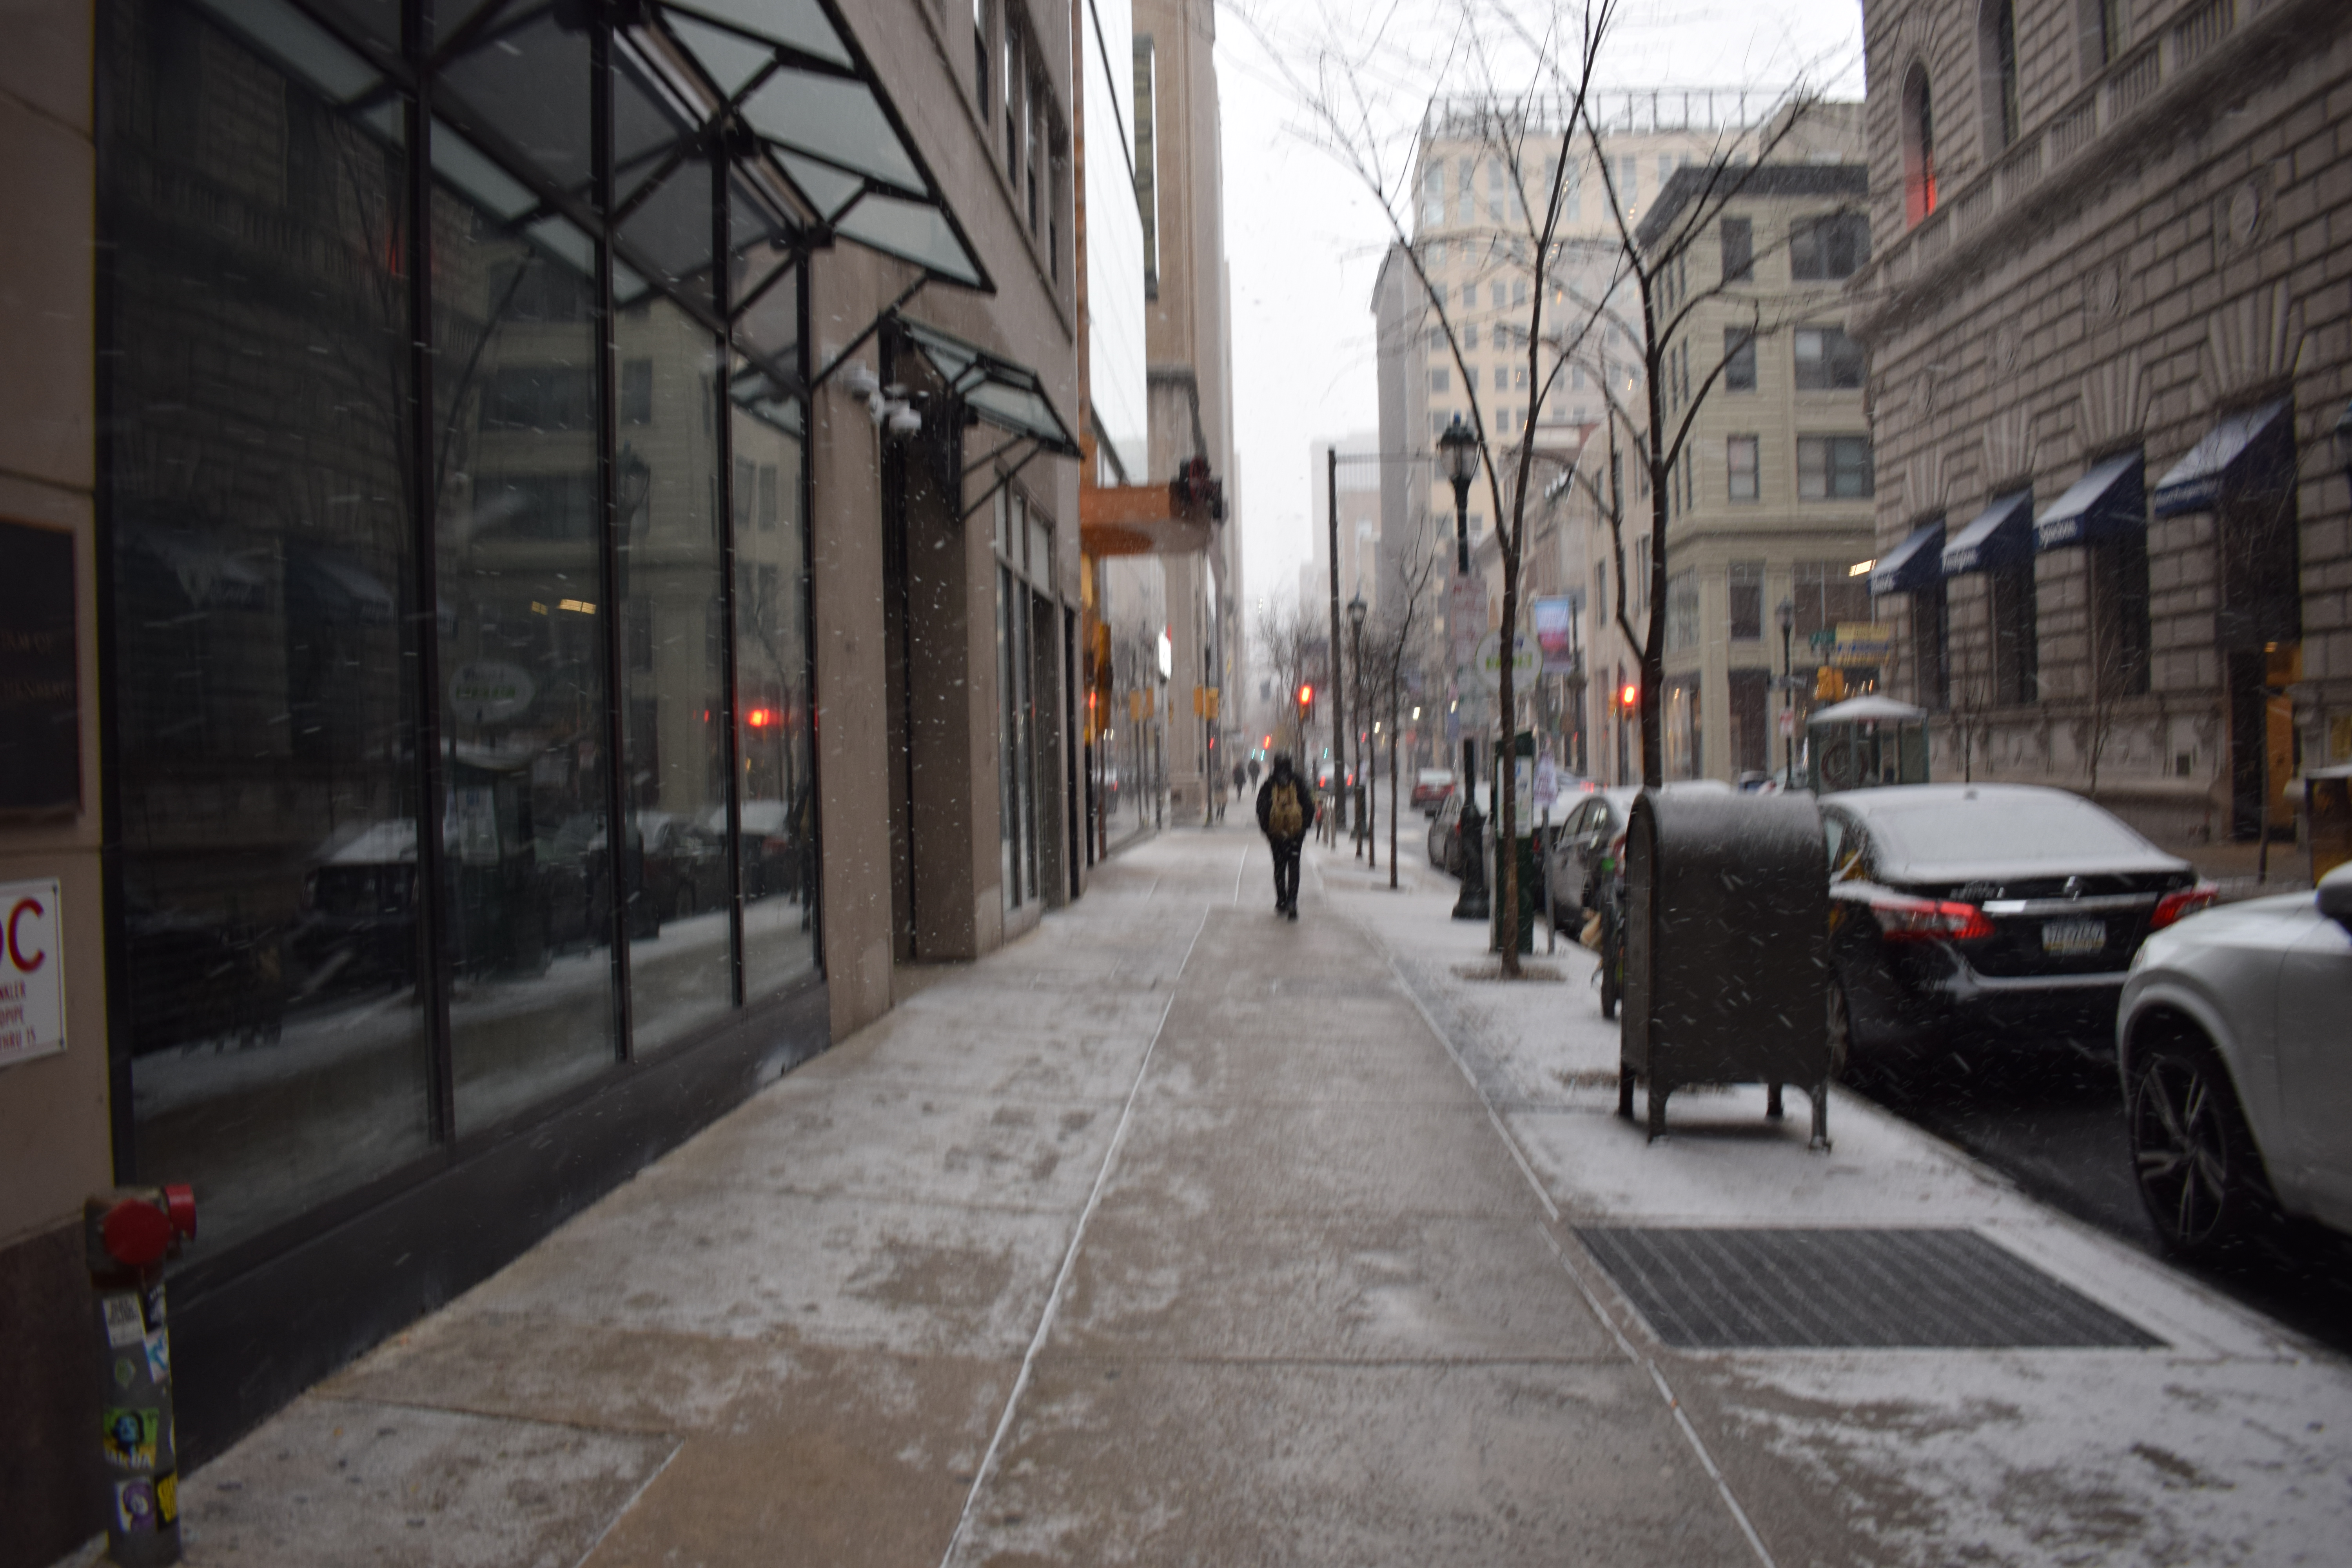 snowing-in-philly-1